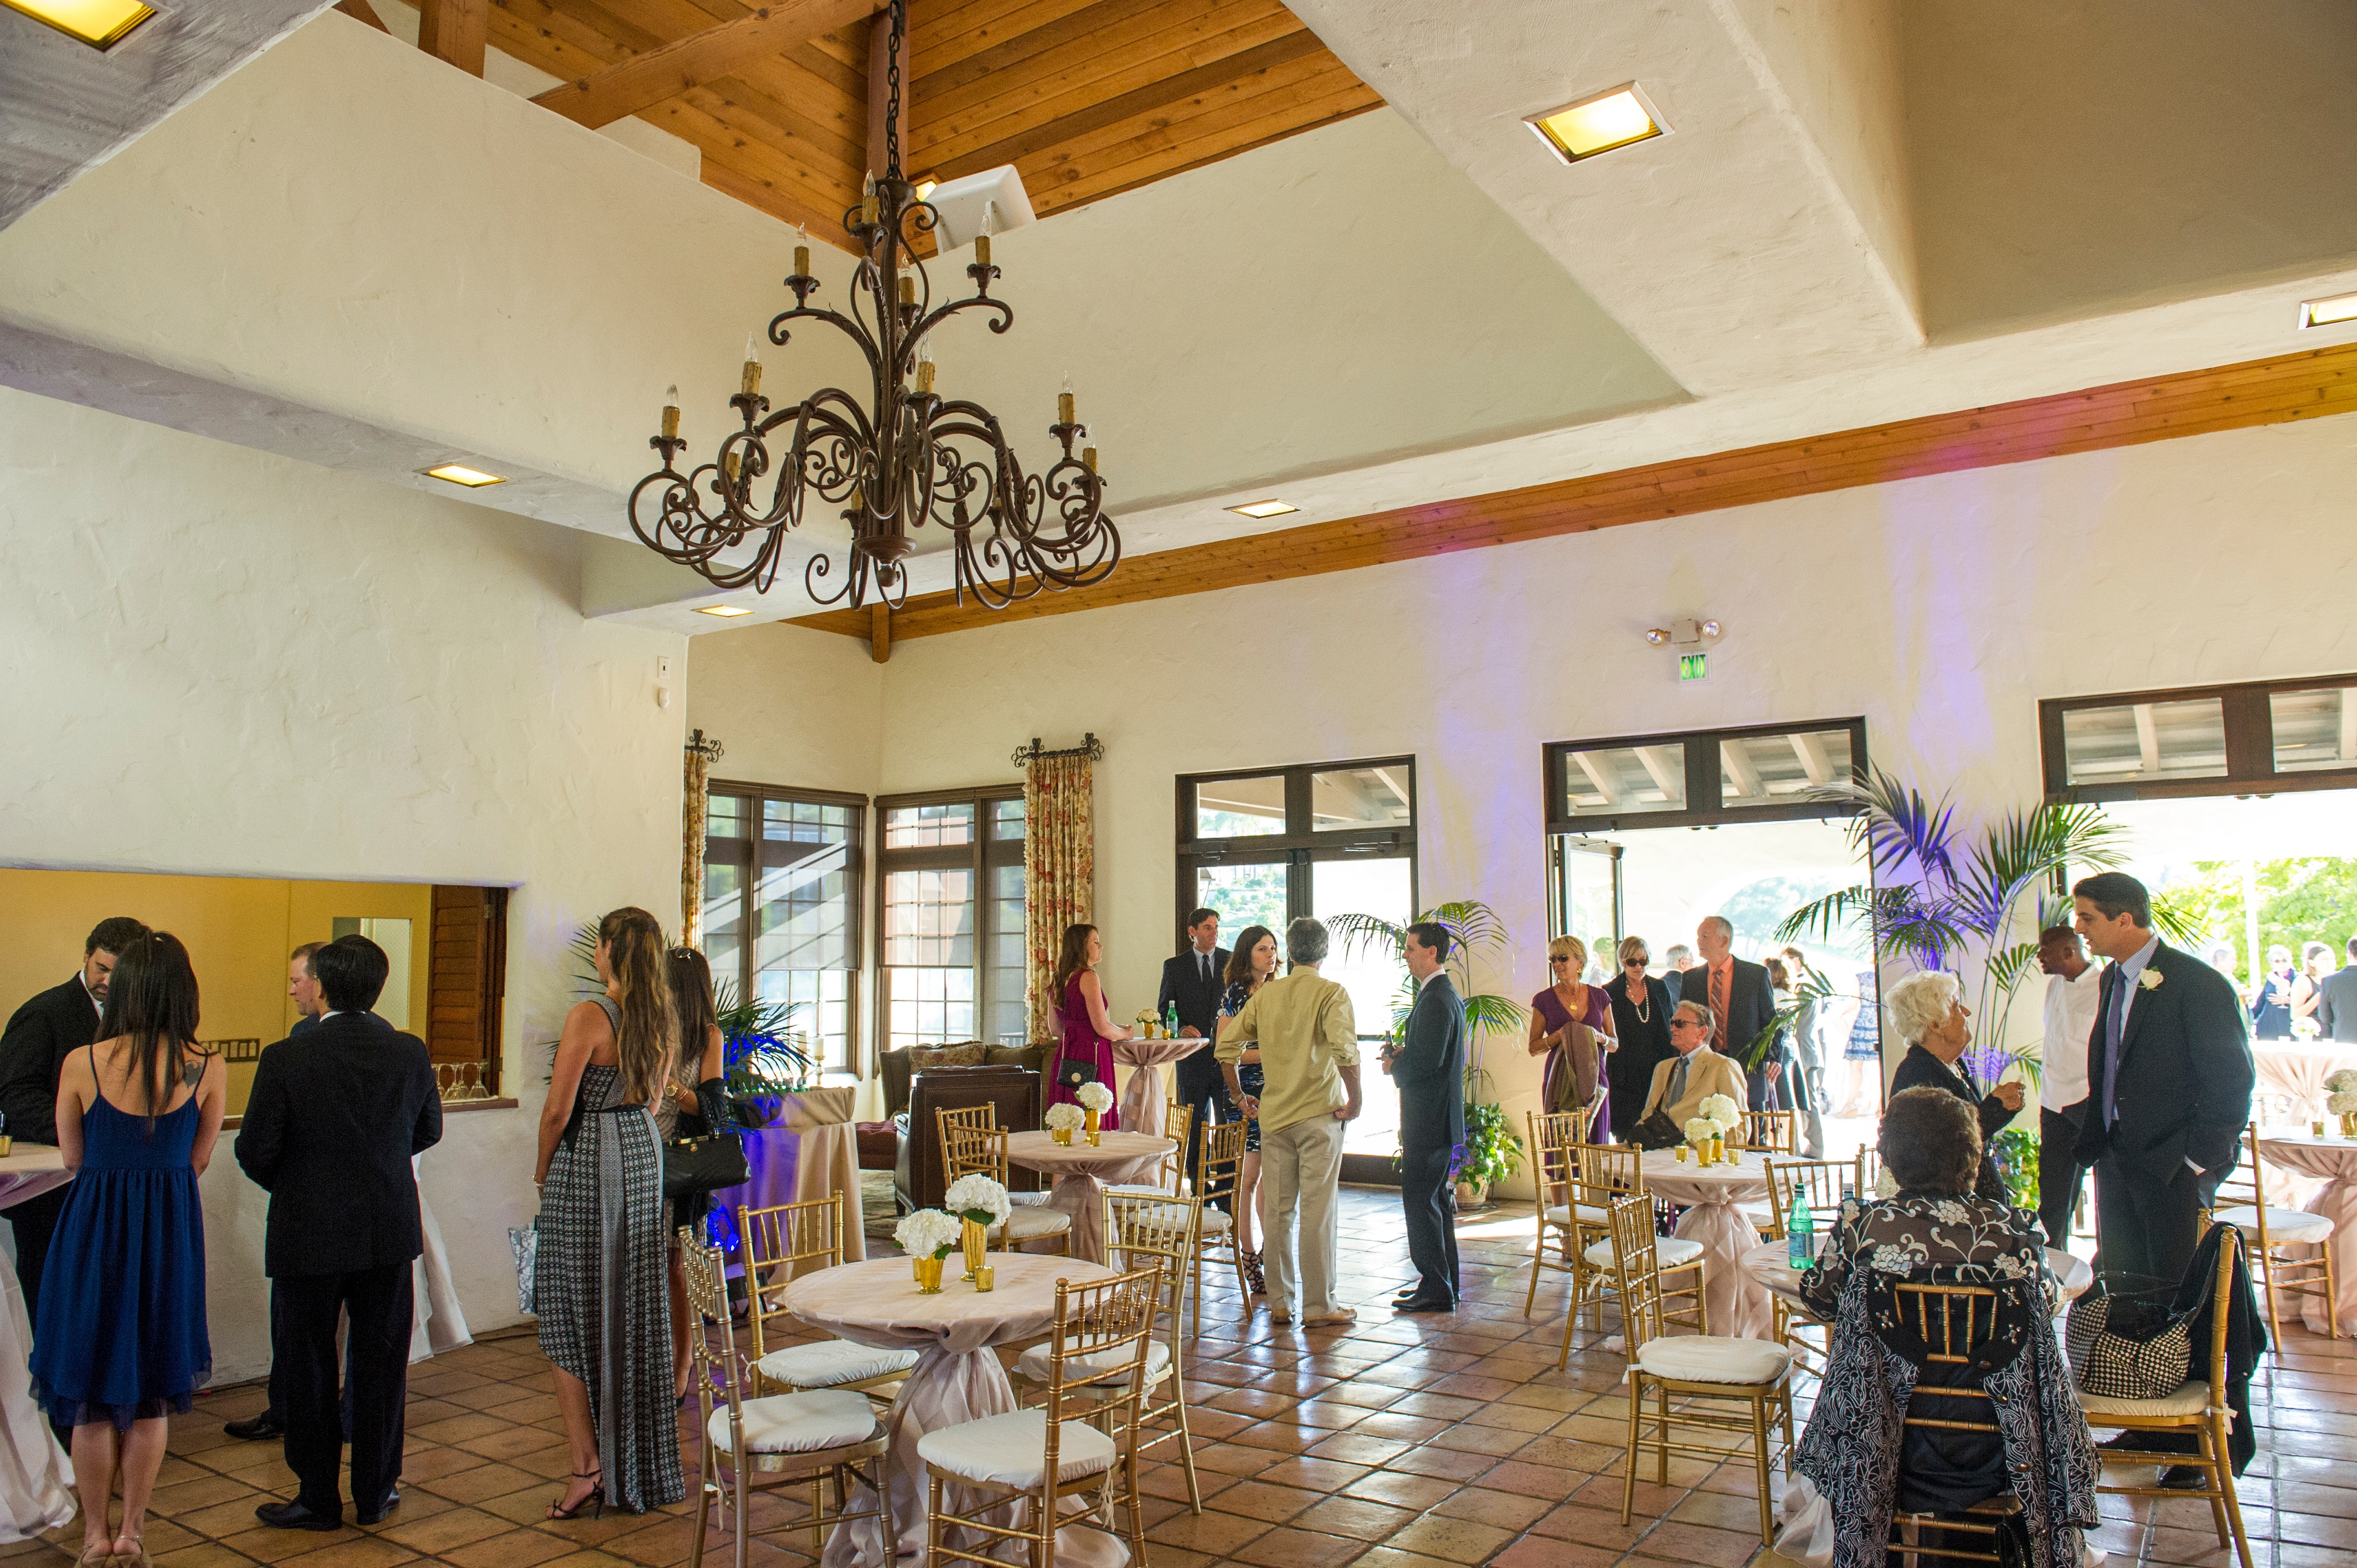 Fairbanks ranch, event space